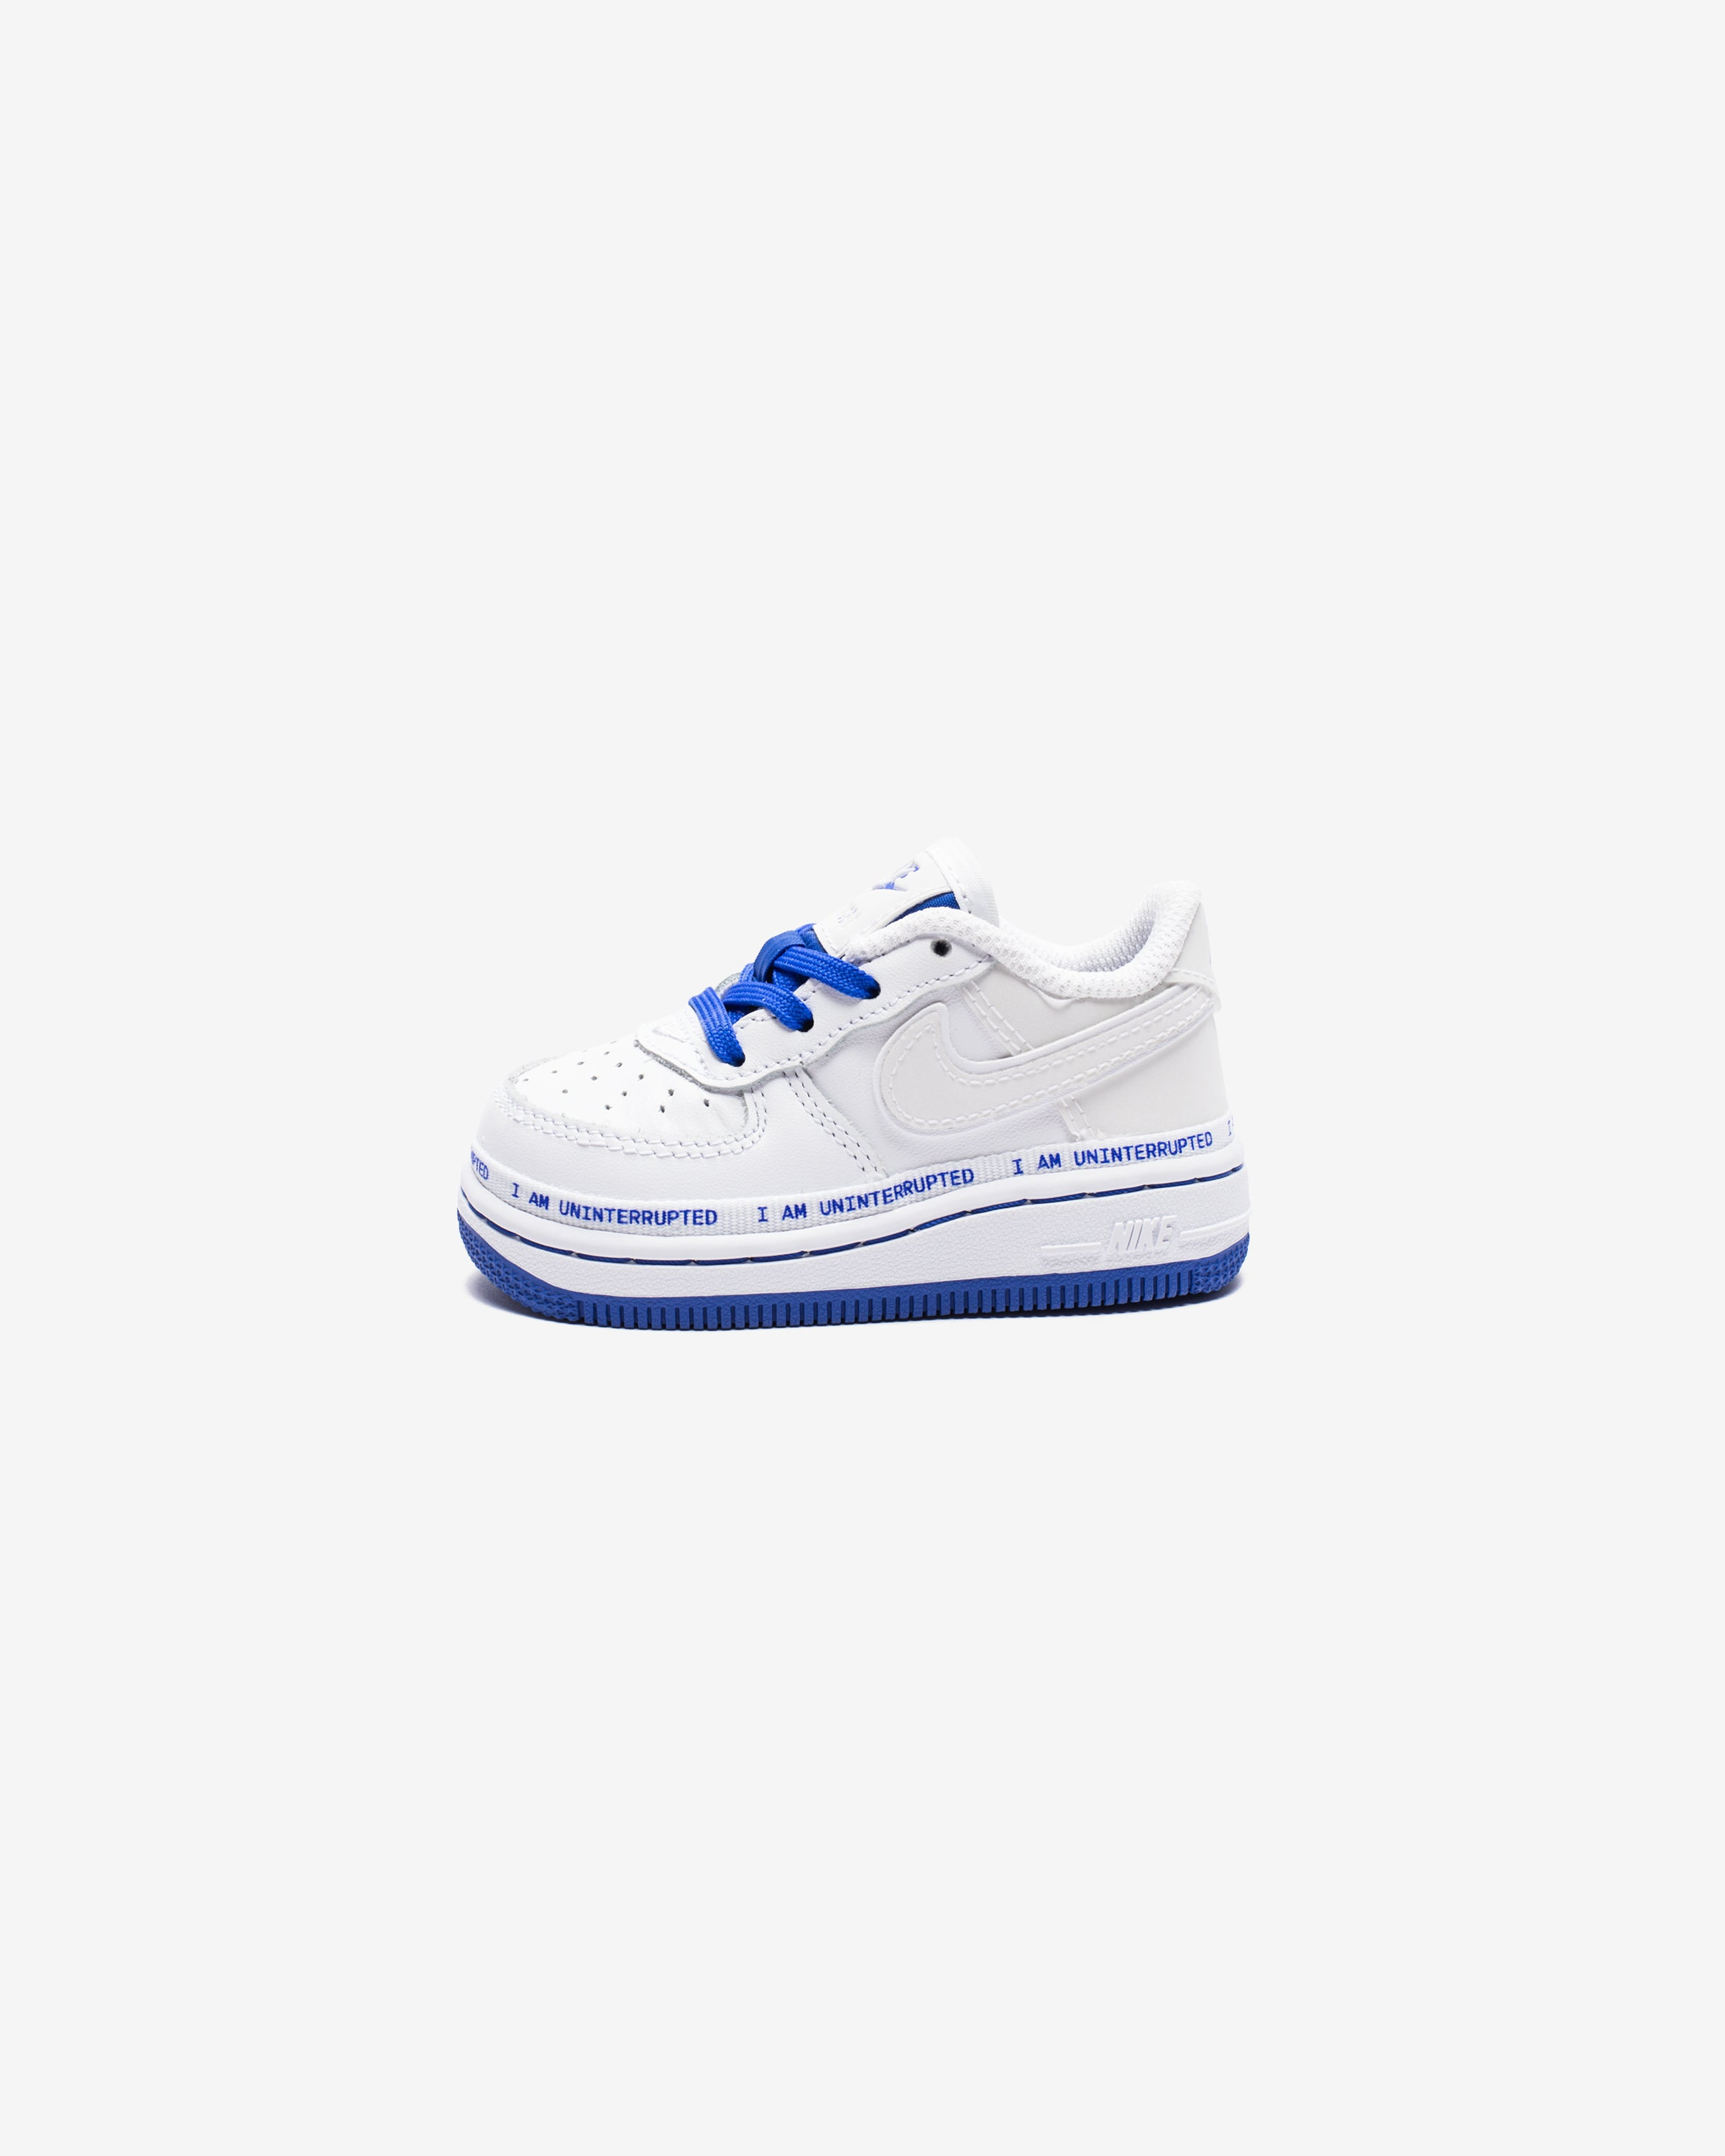 NIKE X UNINTERRUPTED TD AIR FORCE 1 '07 QS - WHITE/RACERBLUE